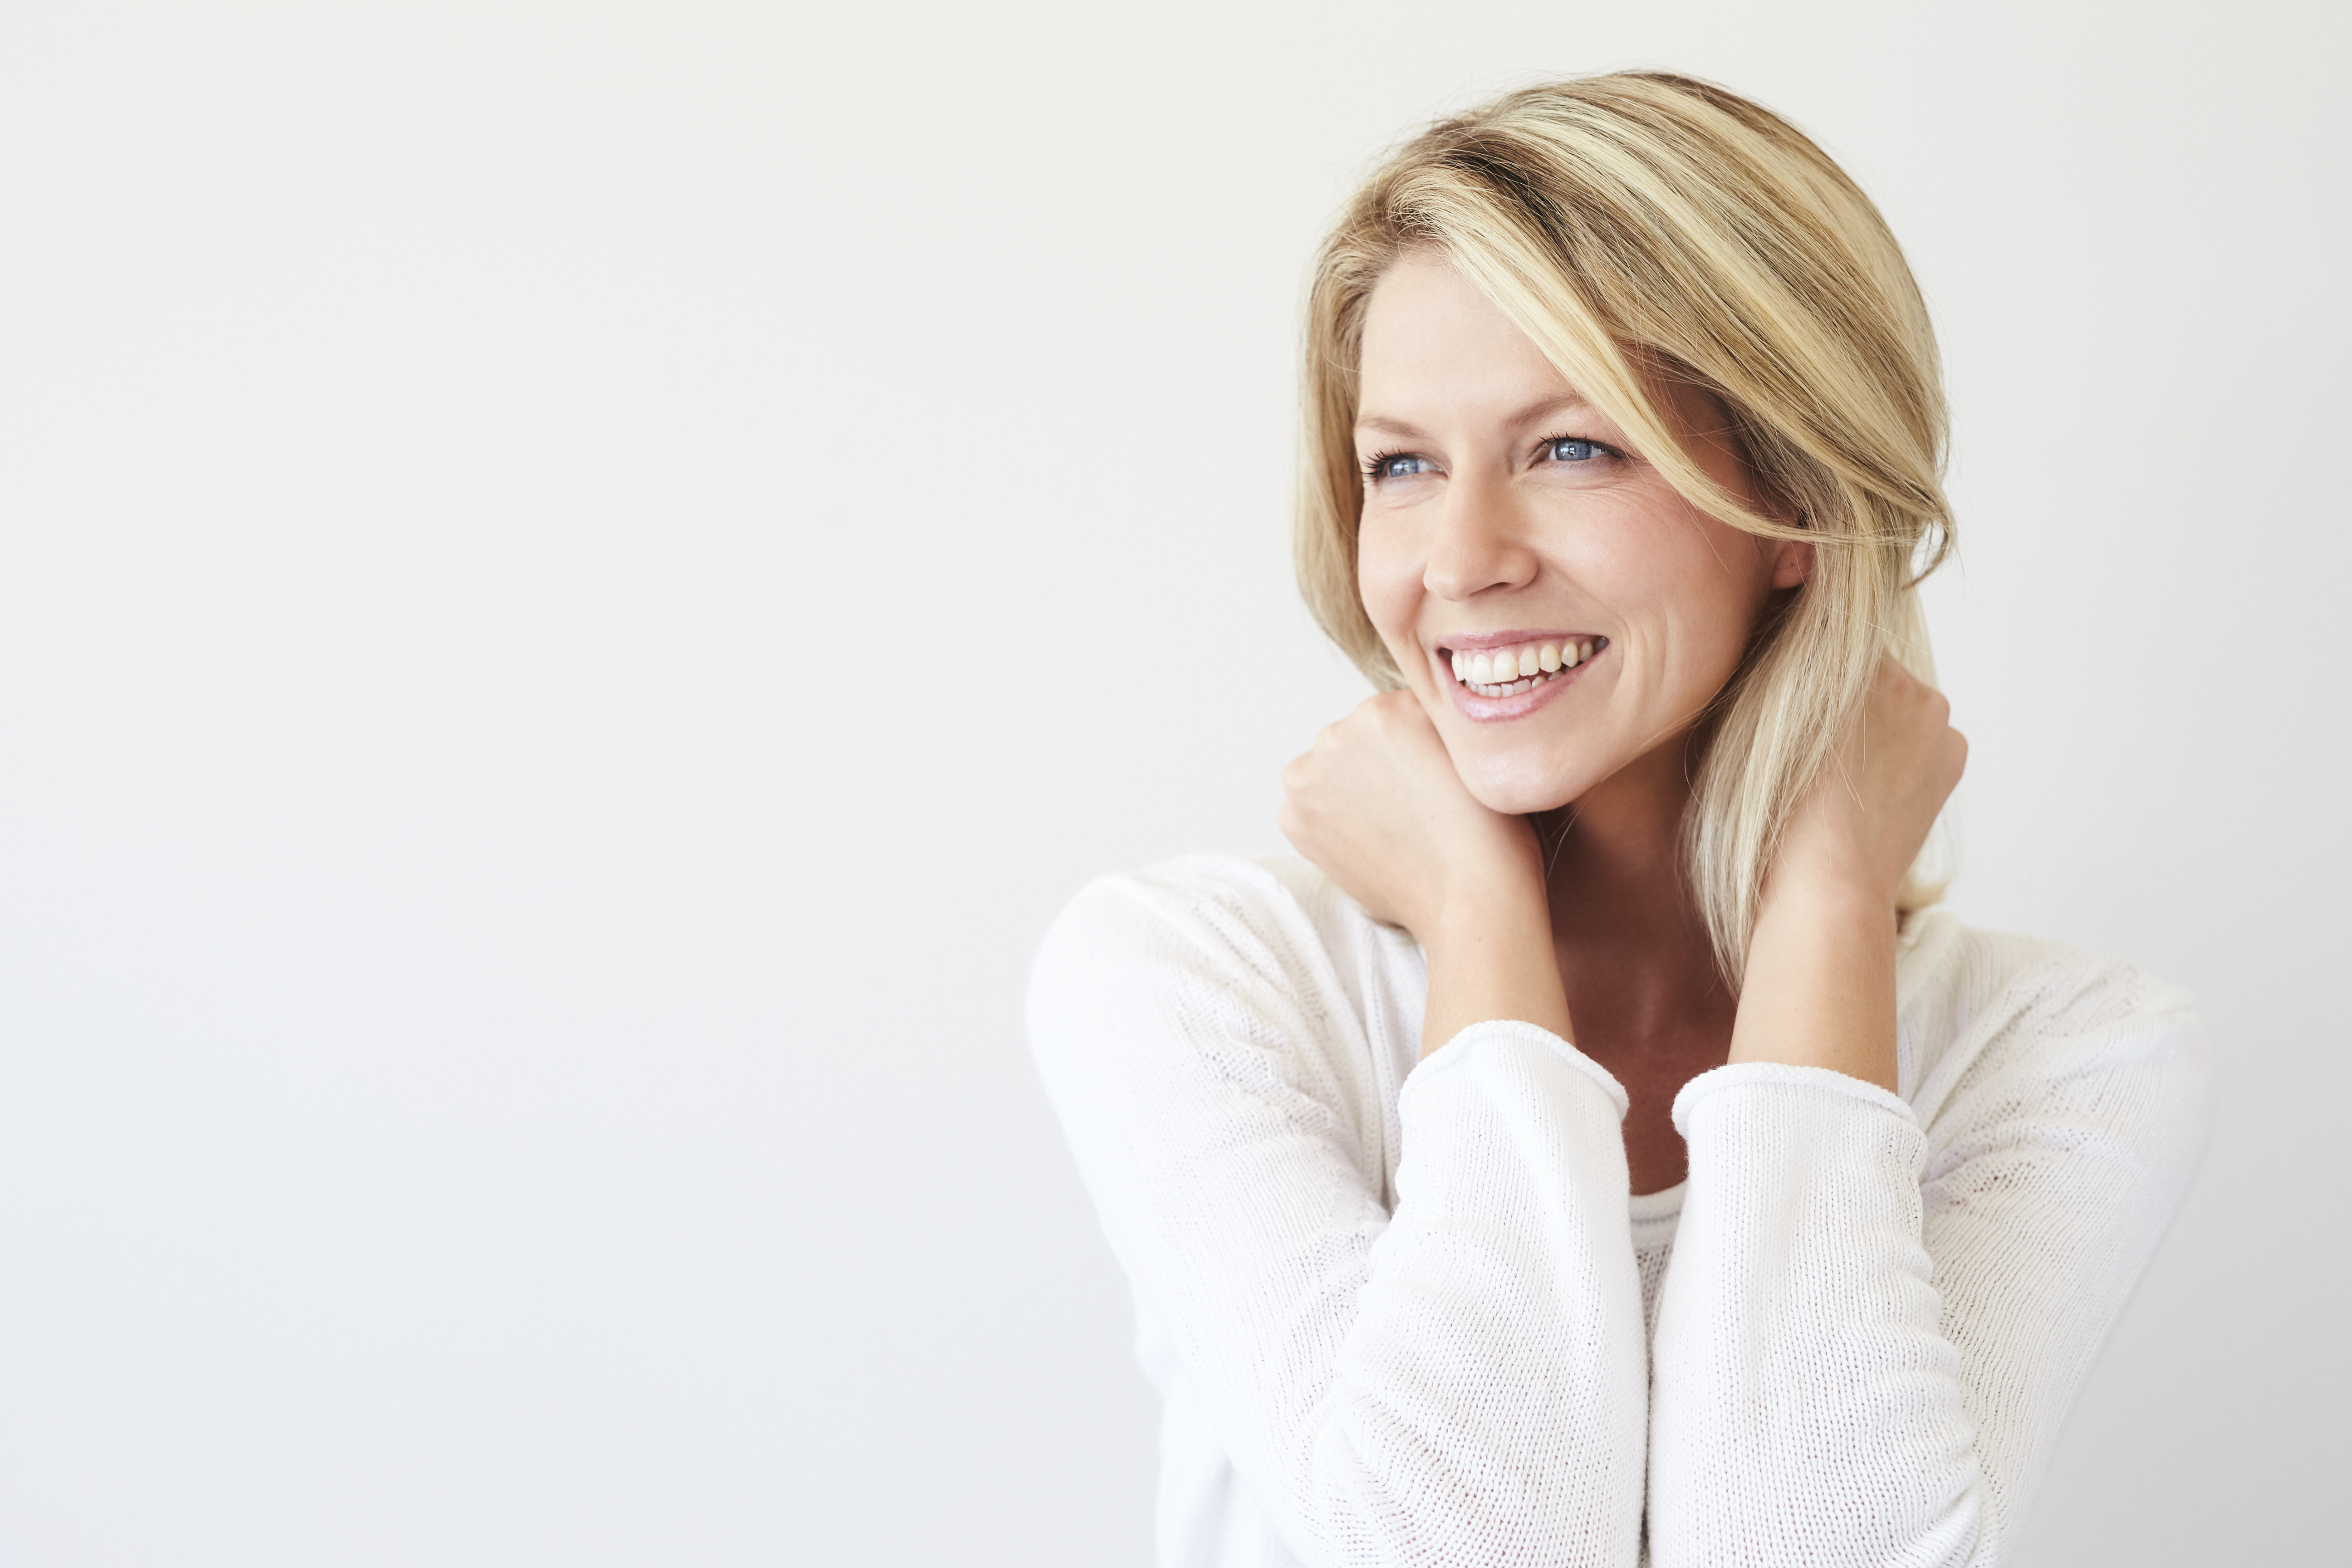 A Facelift with Dr. Wallin